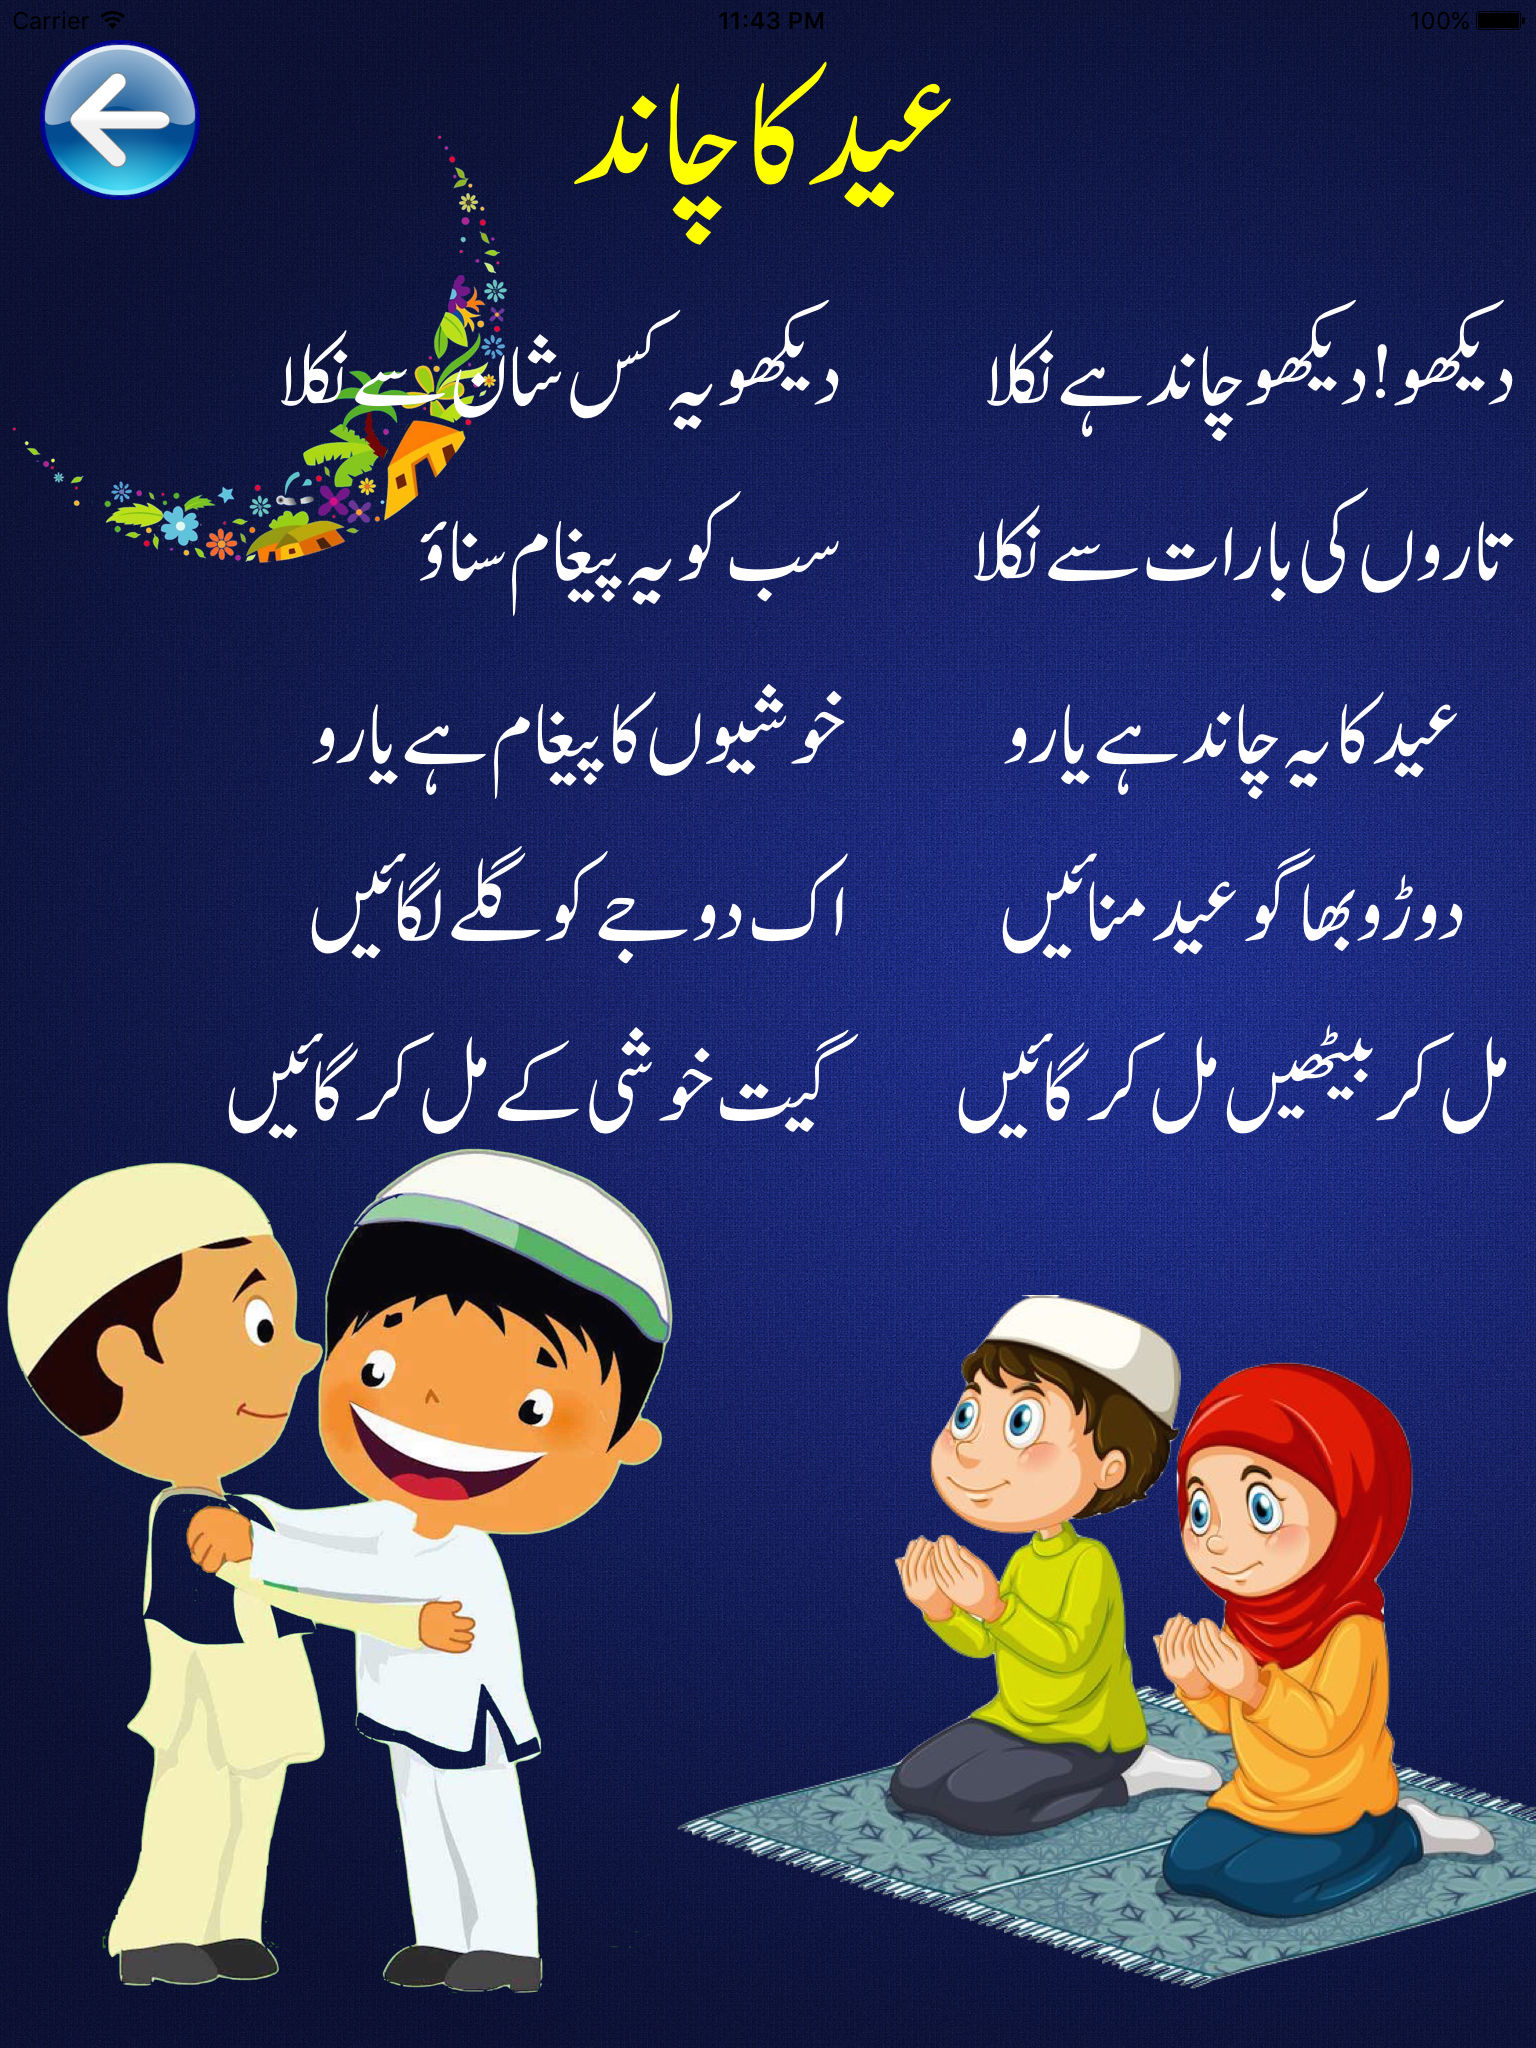 Urdu Rhymes Poem App Ranking and Store Data | App Annie